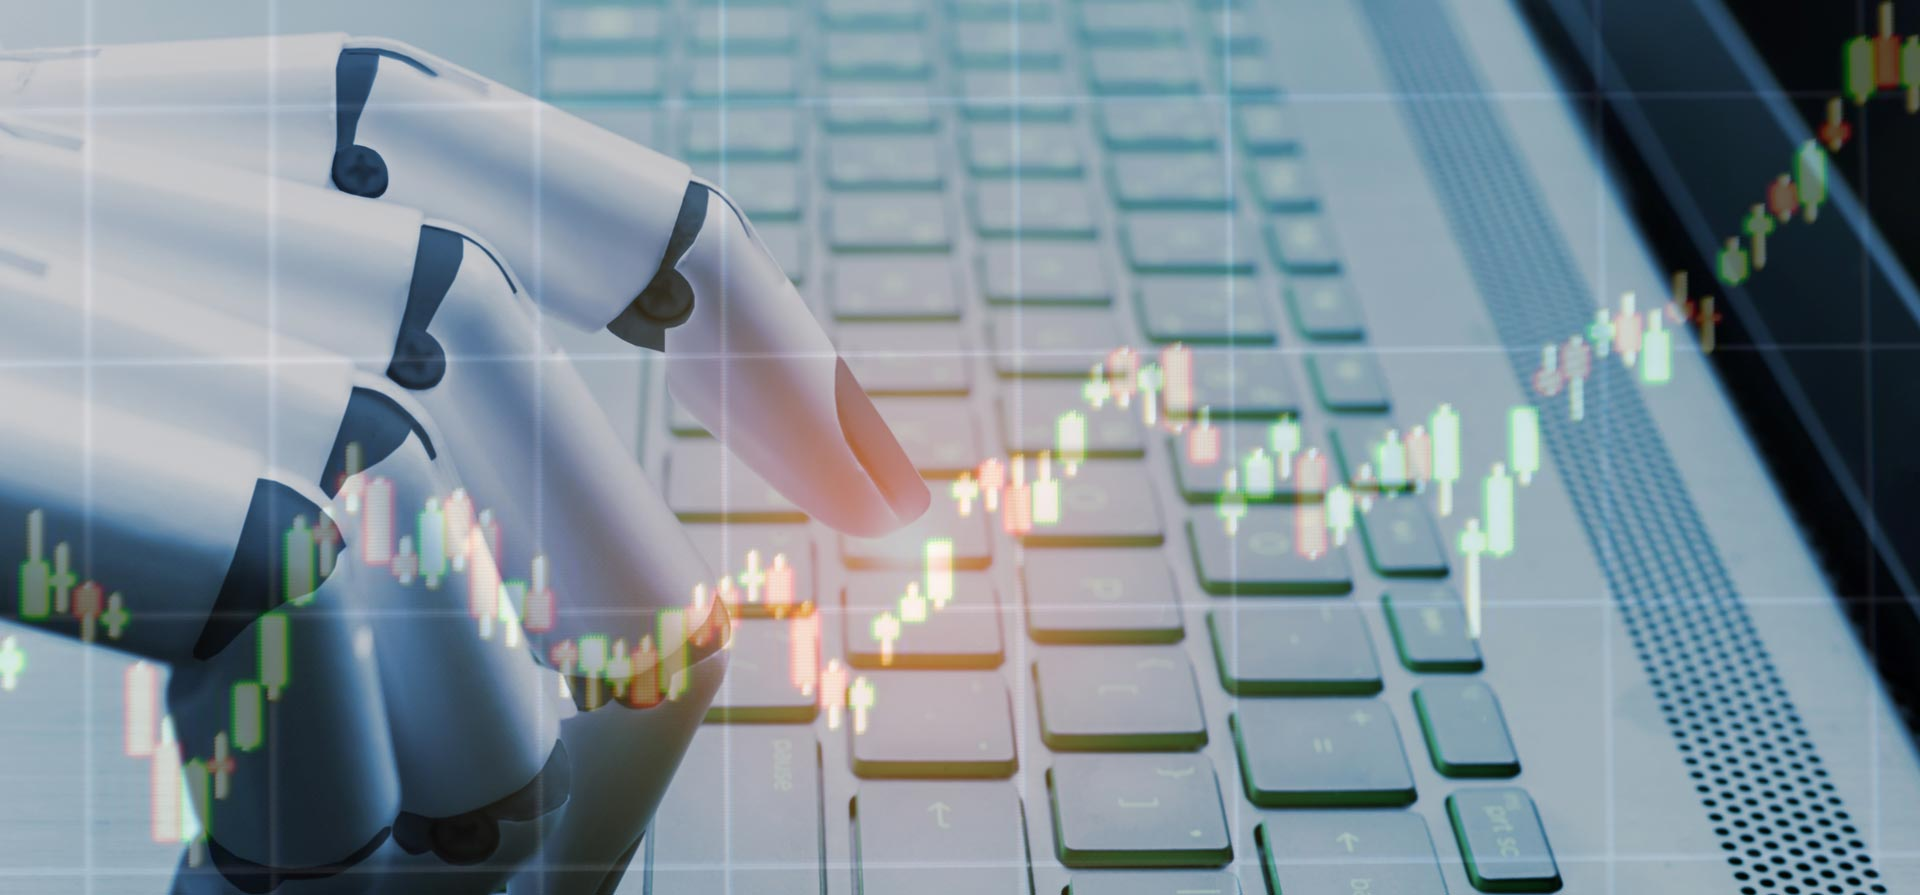 Mobility + RPA = A Quicker Route to Digital Mortgage for Mid-Size Lenders